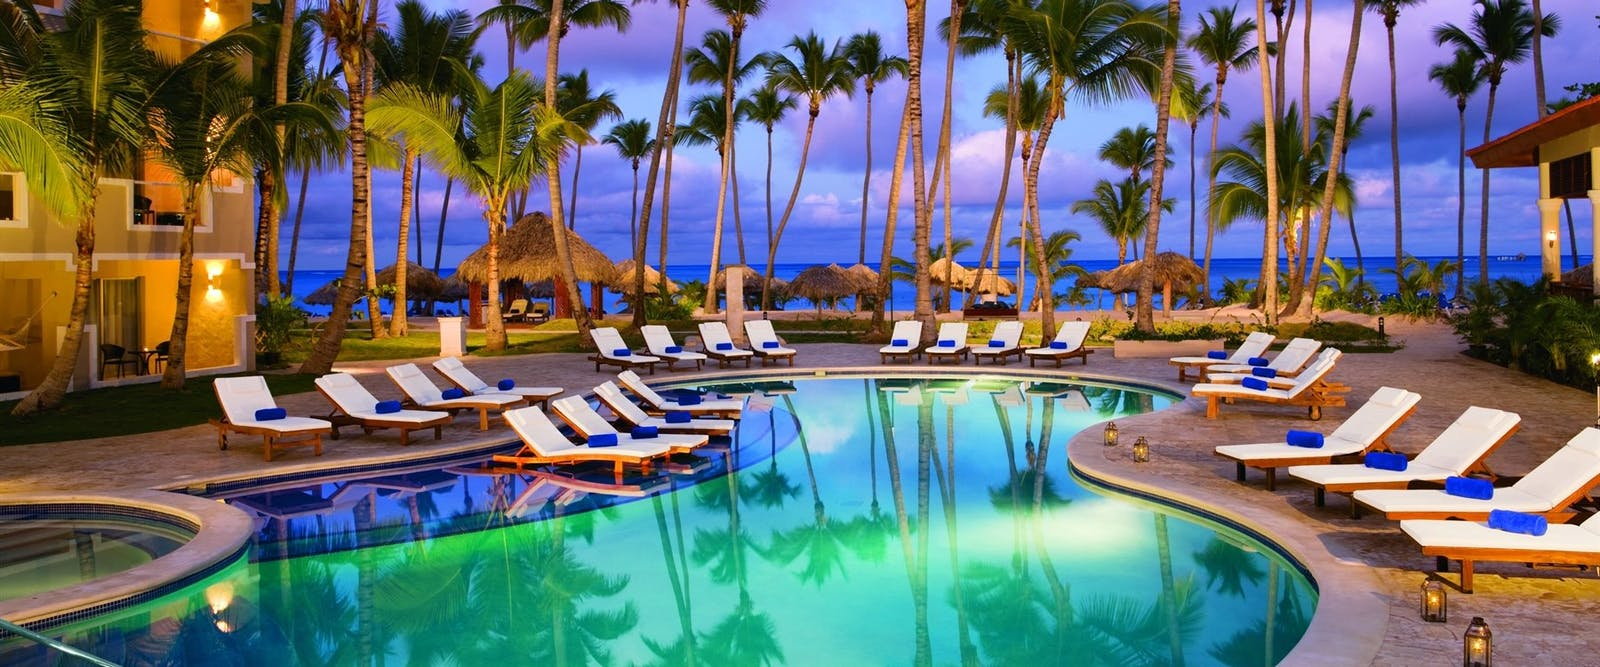 Preferred club pool at Dreams Palm Beach Punta Cana, Dominican Republic